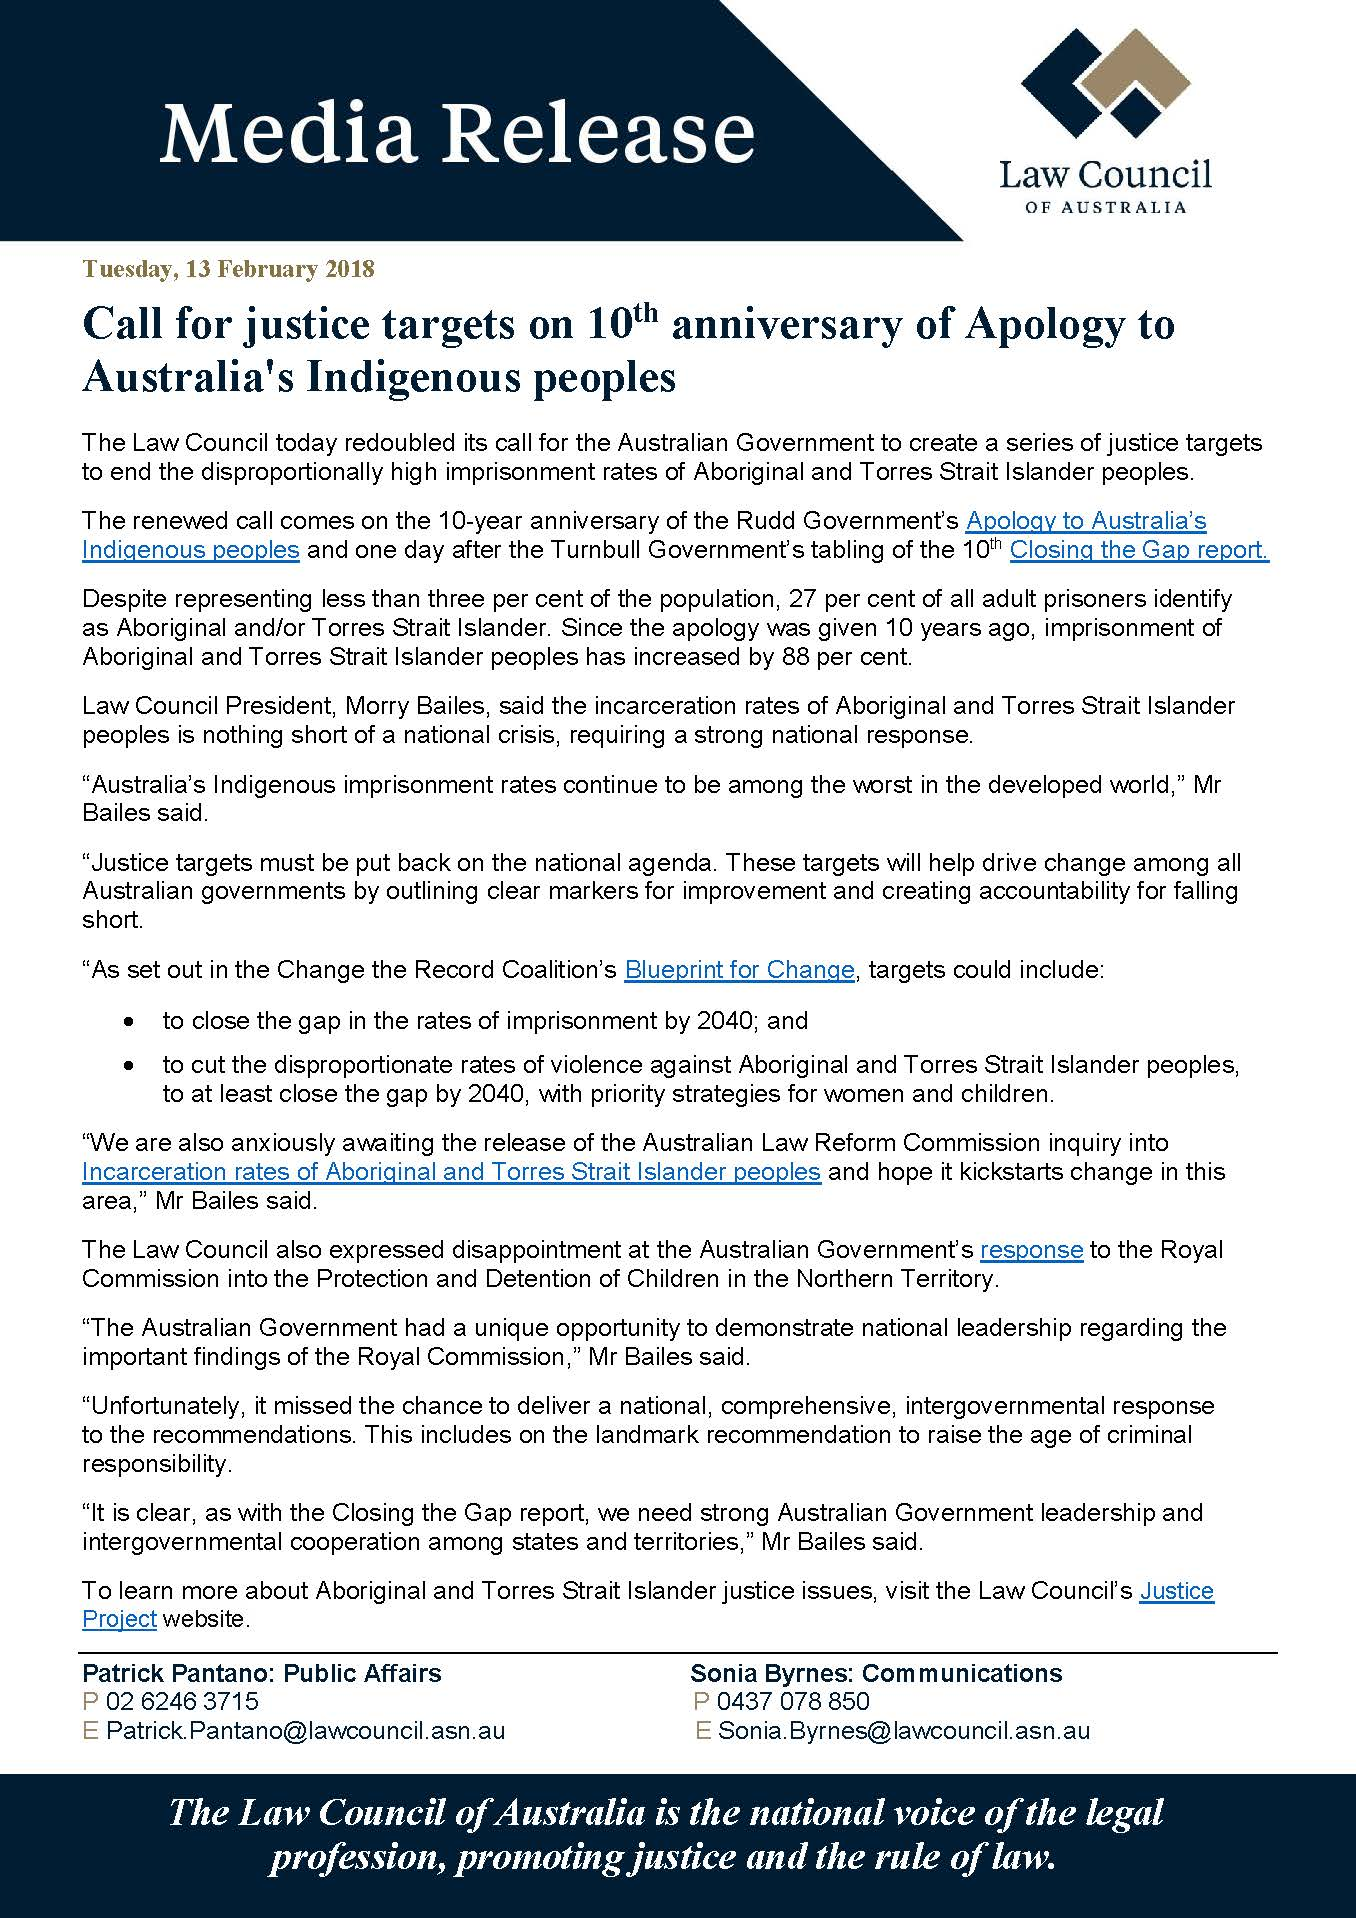 Call for justice targets on 10th anniversary of apology to justicetargets malvernweather Image collections